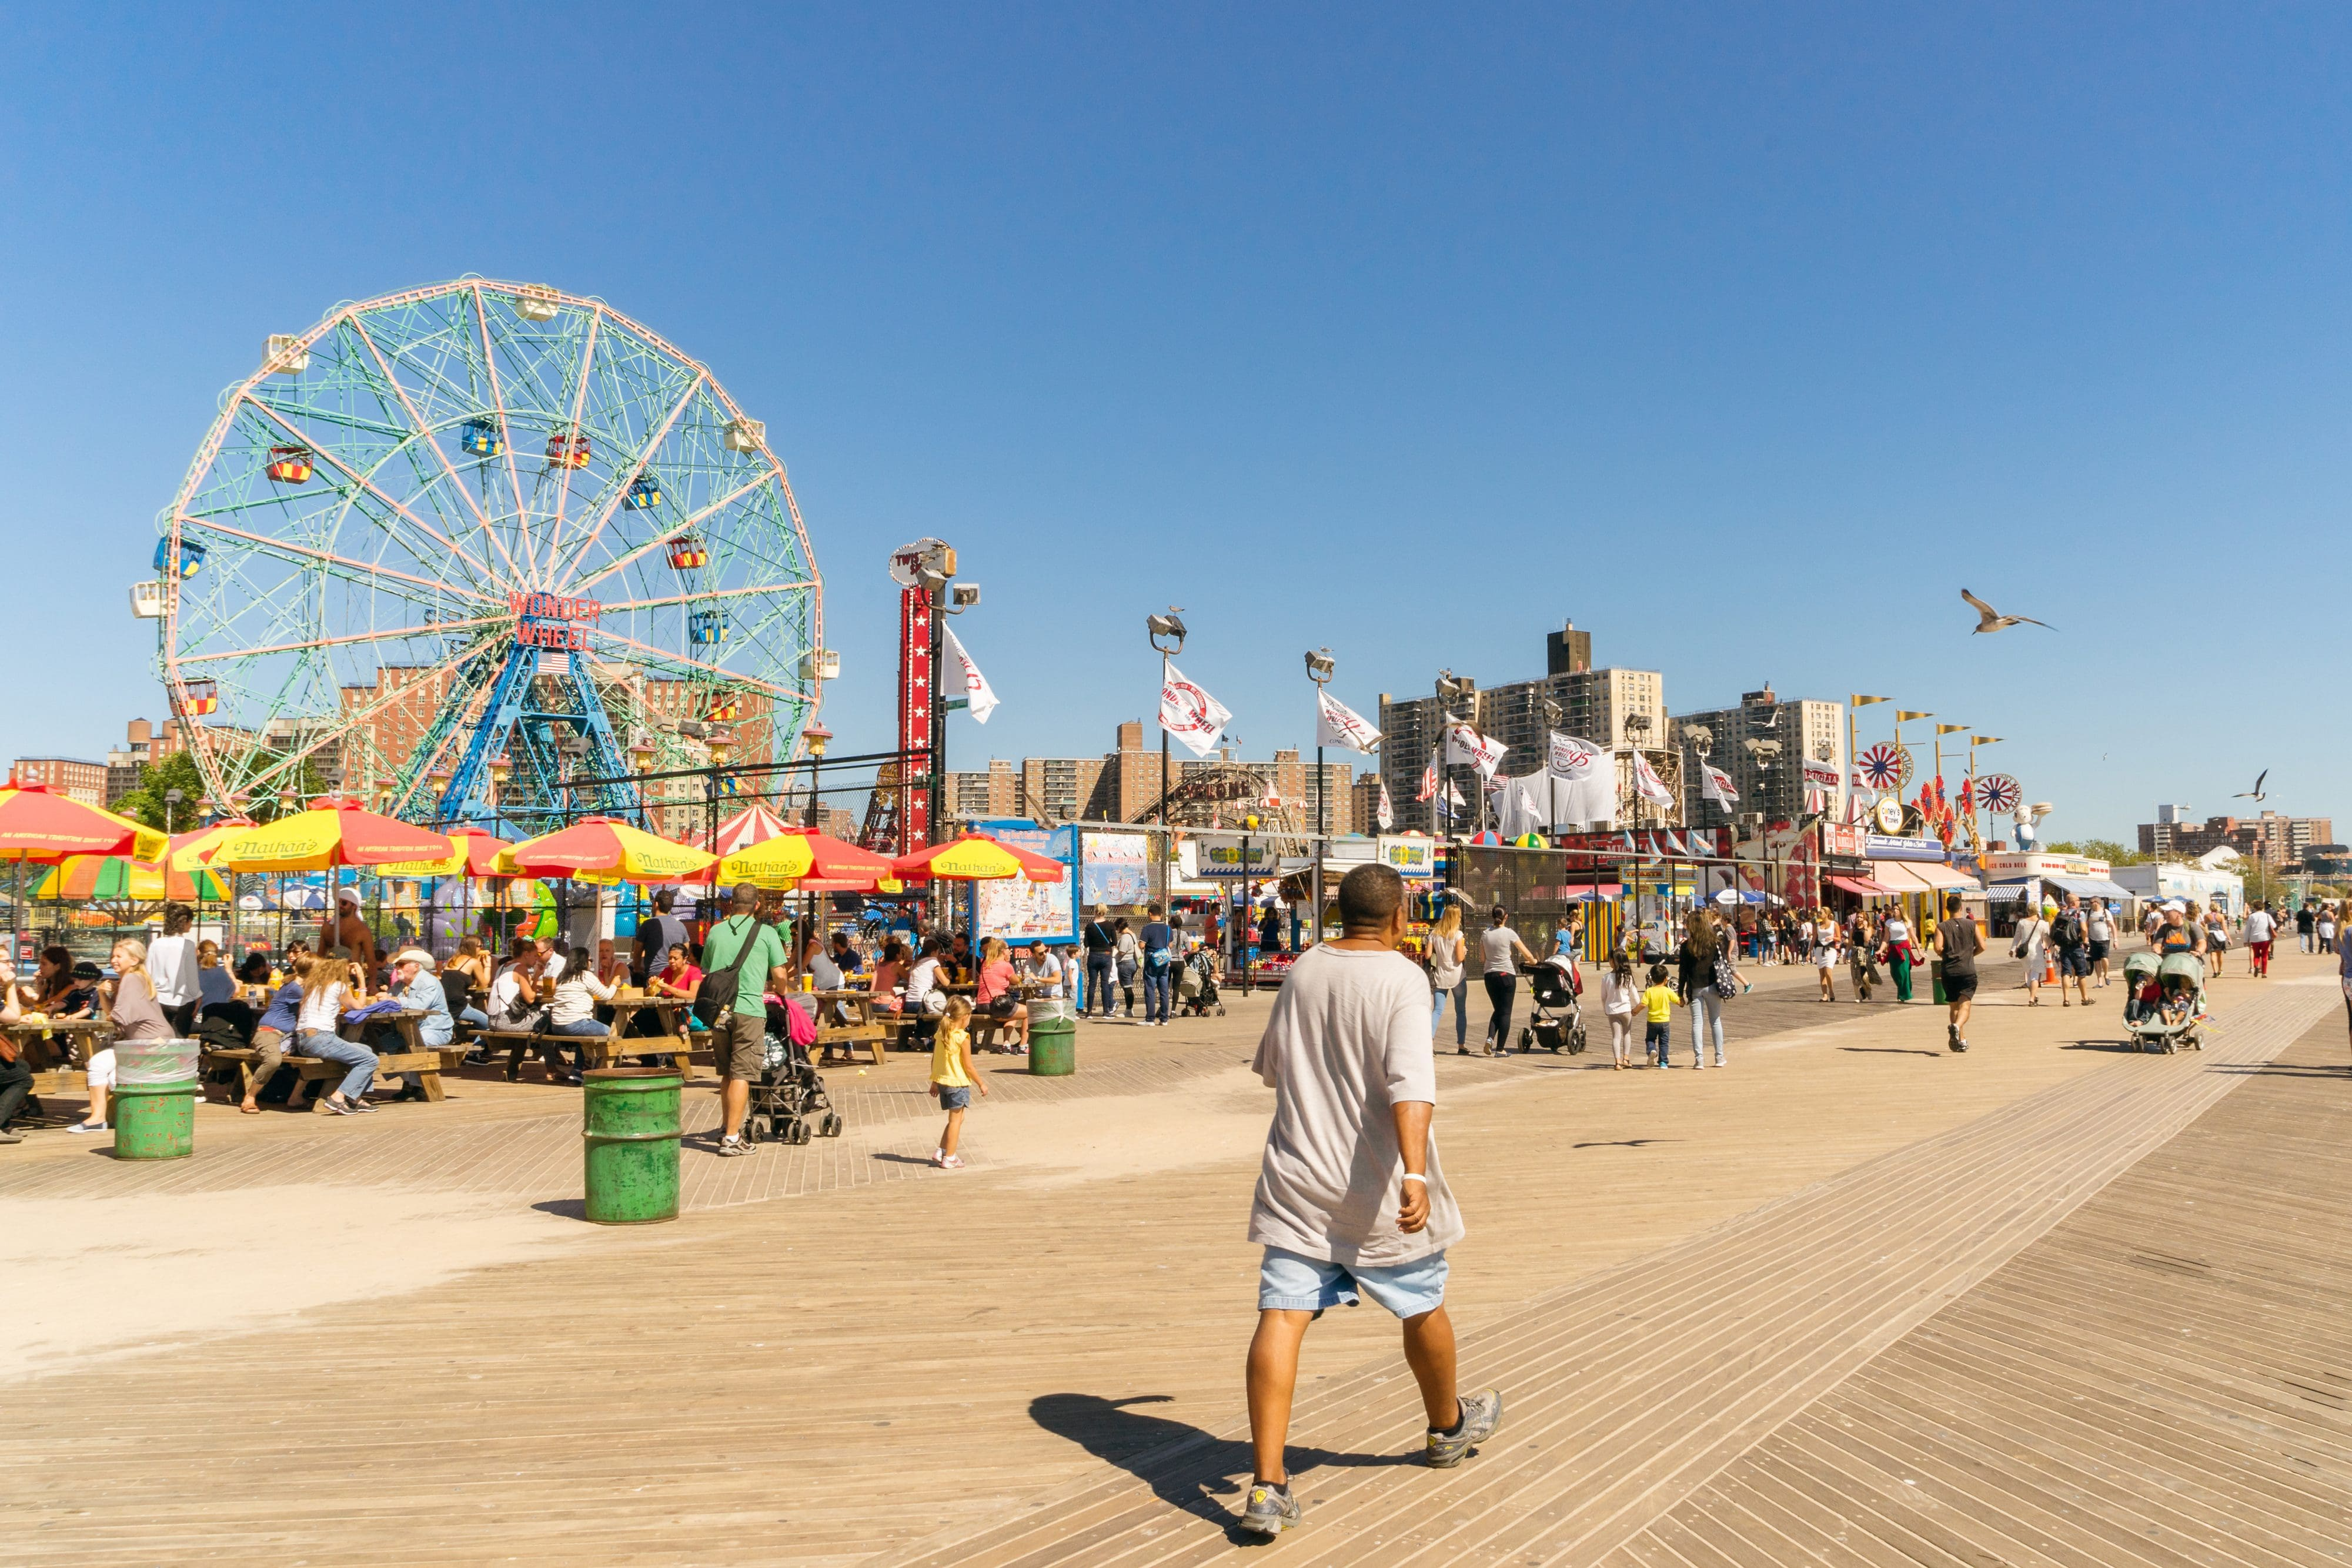 The colourful boardwalk of Coney Island with the famous Ferris wheel in the background